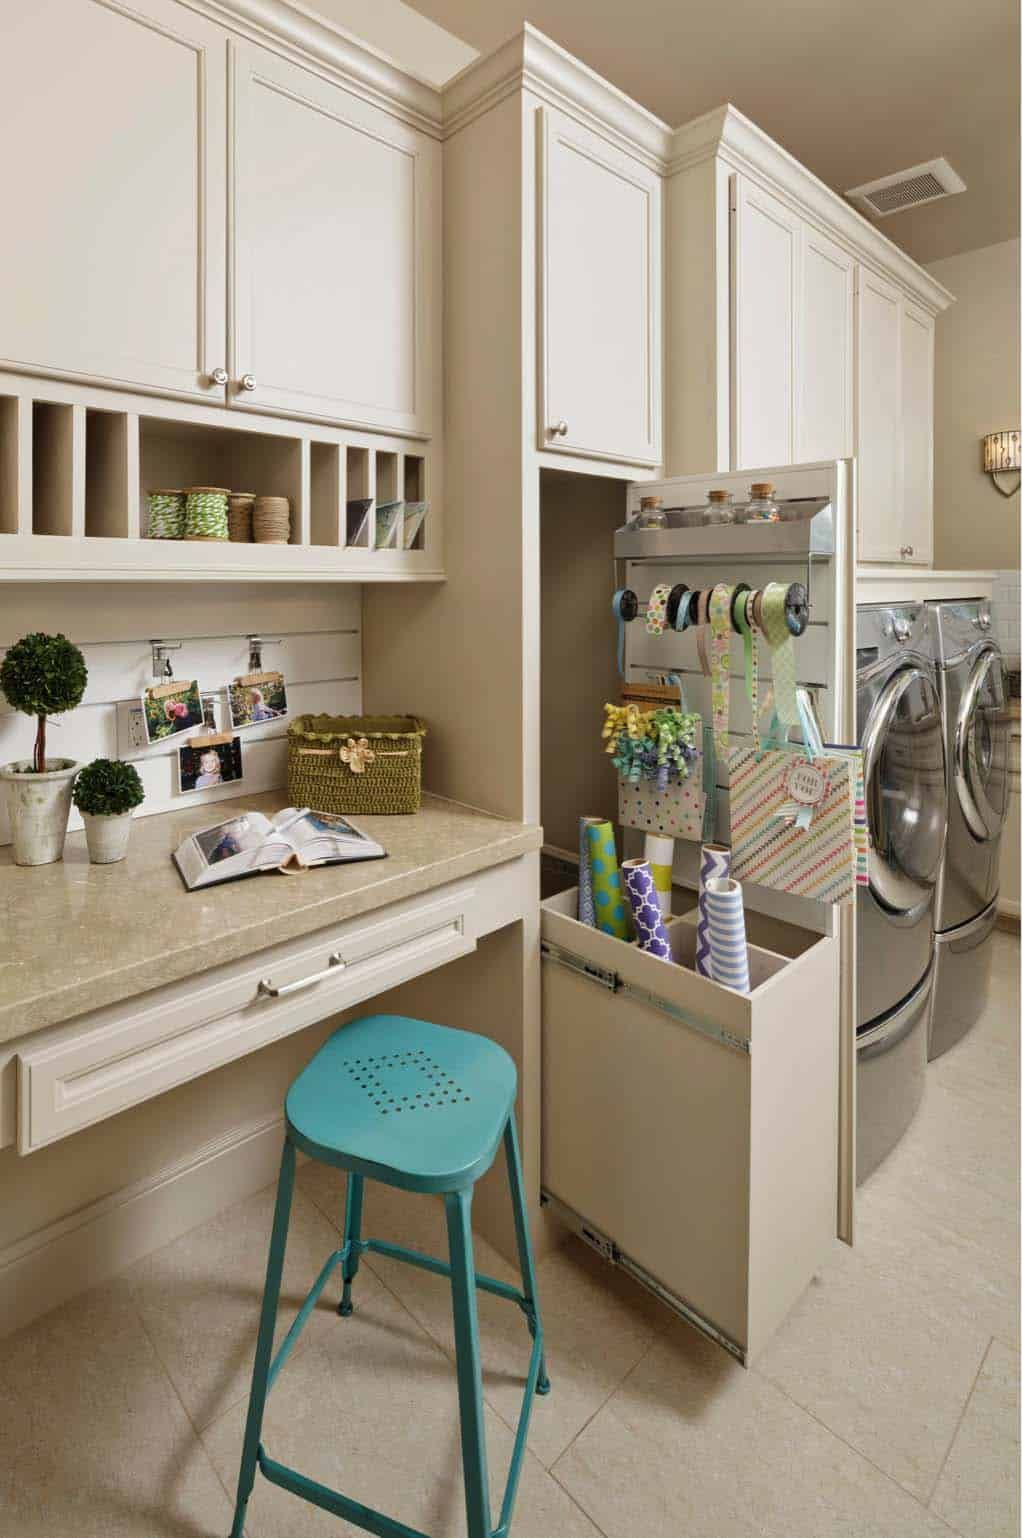 23 Incredibly Efficient And Multifunctional Laundry Room Ideas Laundry Room Storage Laundry Room Design Laundry Craft Rooms